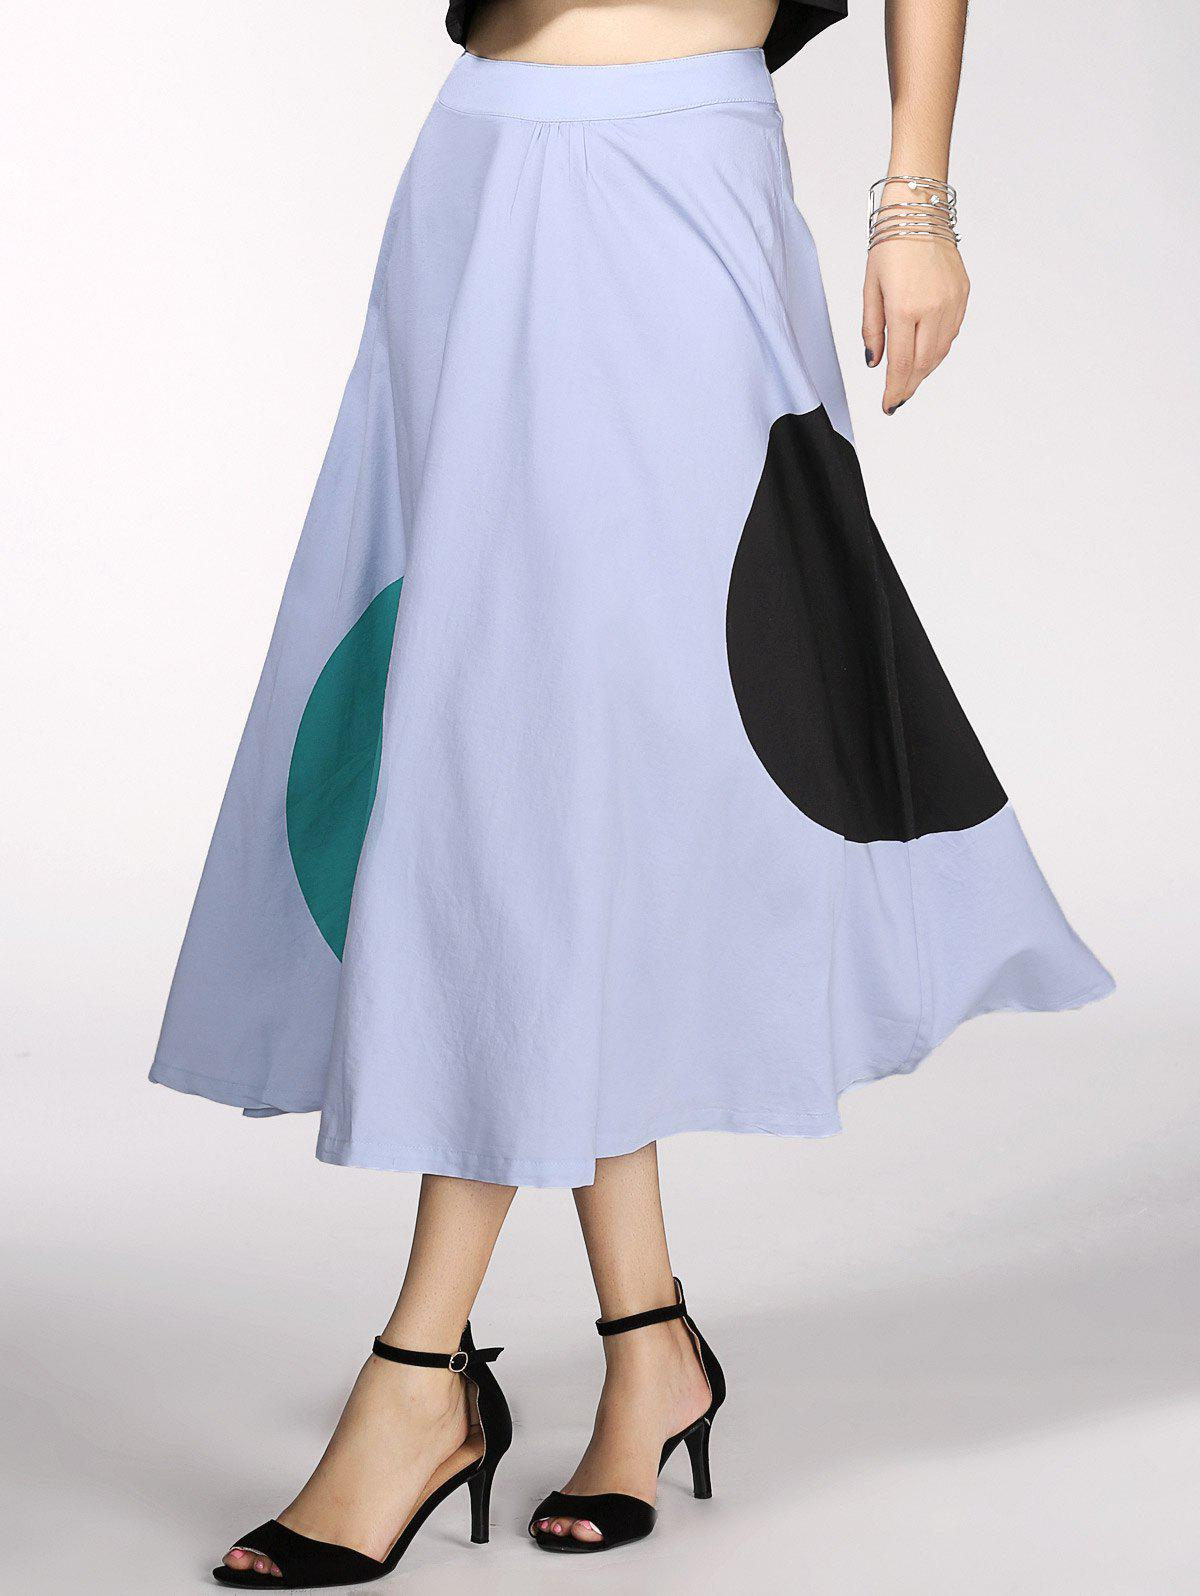 Vintage Womens High Waist Ruffled Long SkirtWomen<br><br><br>Size: M<br>Color: LIGHT BLUE